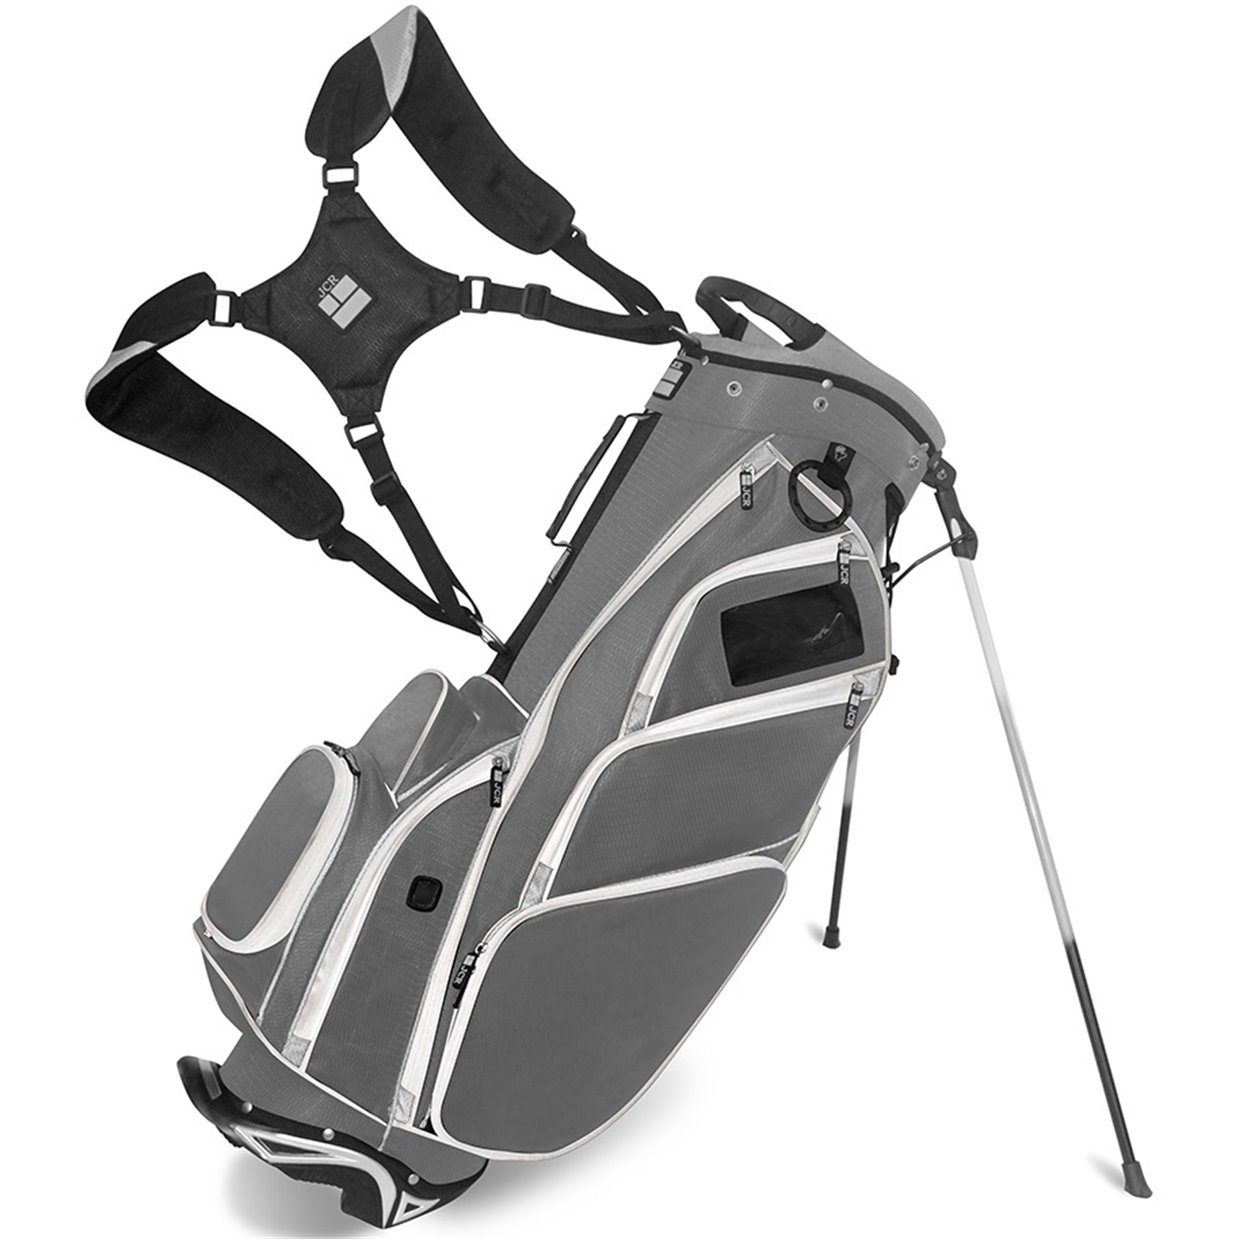 JCR Golf DL550 Stand Bag